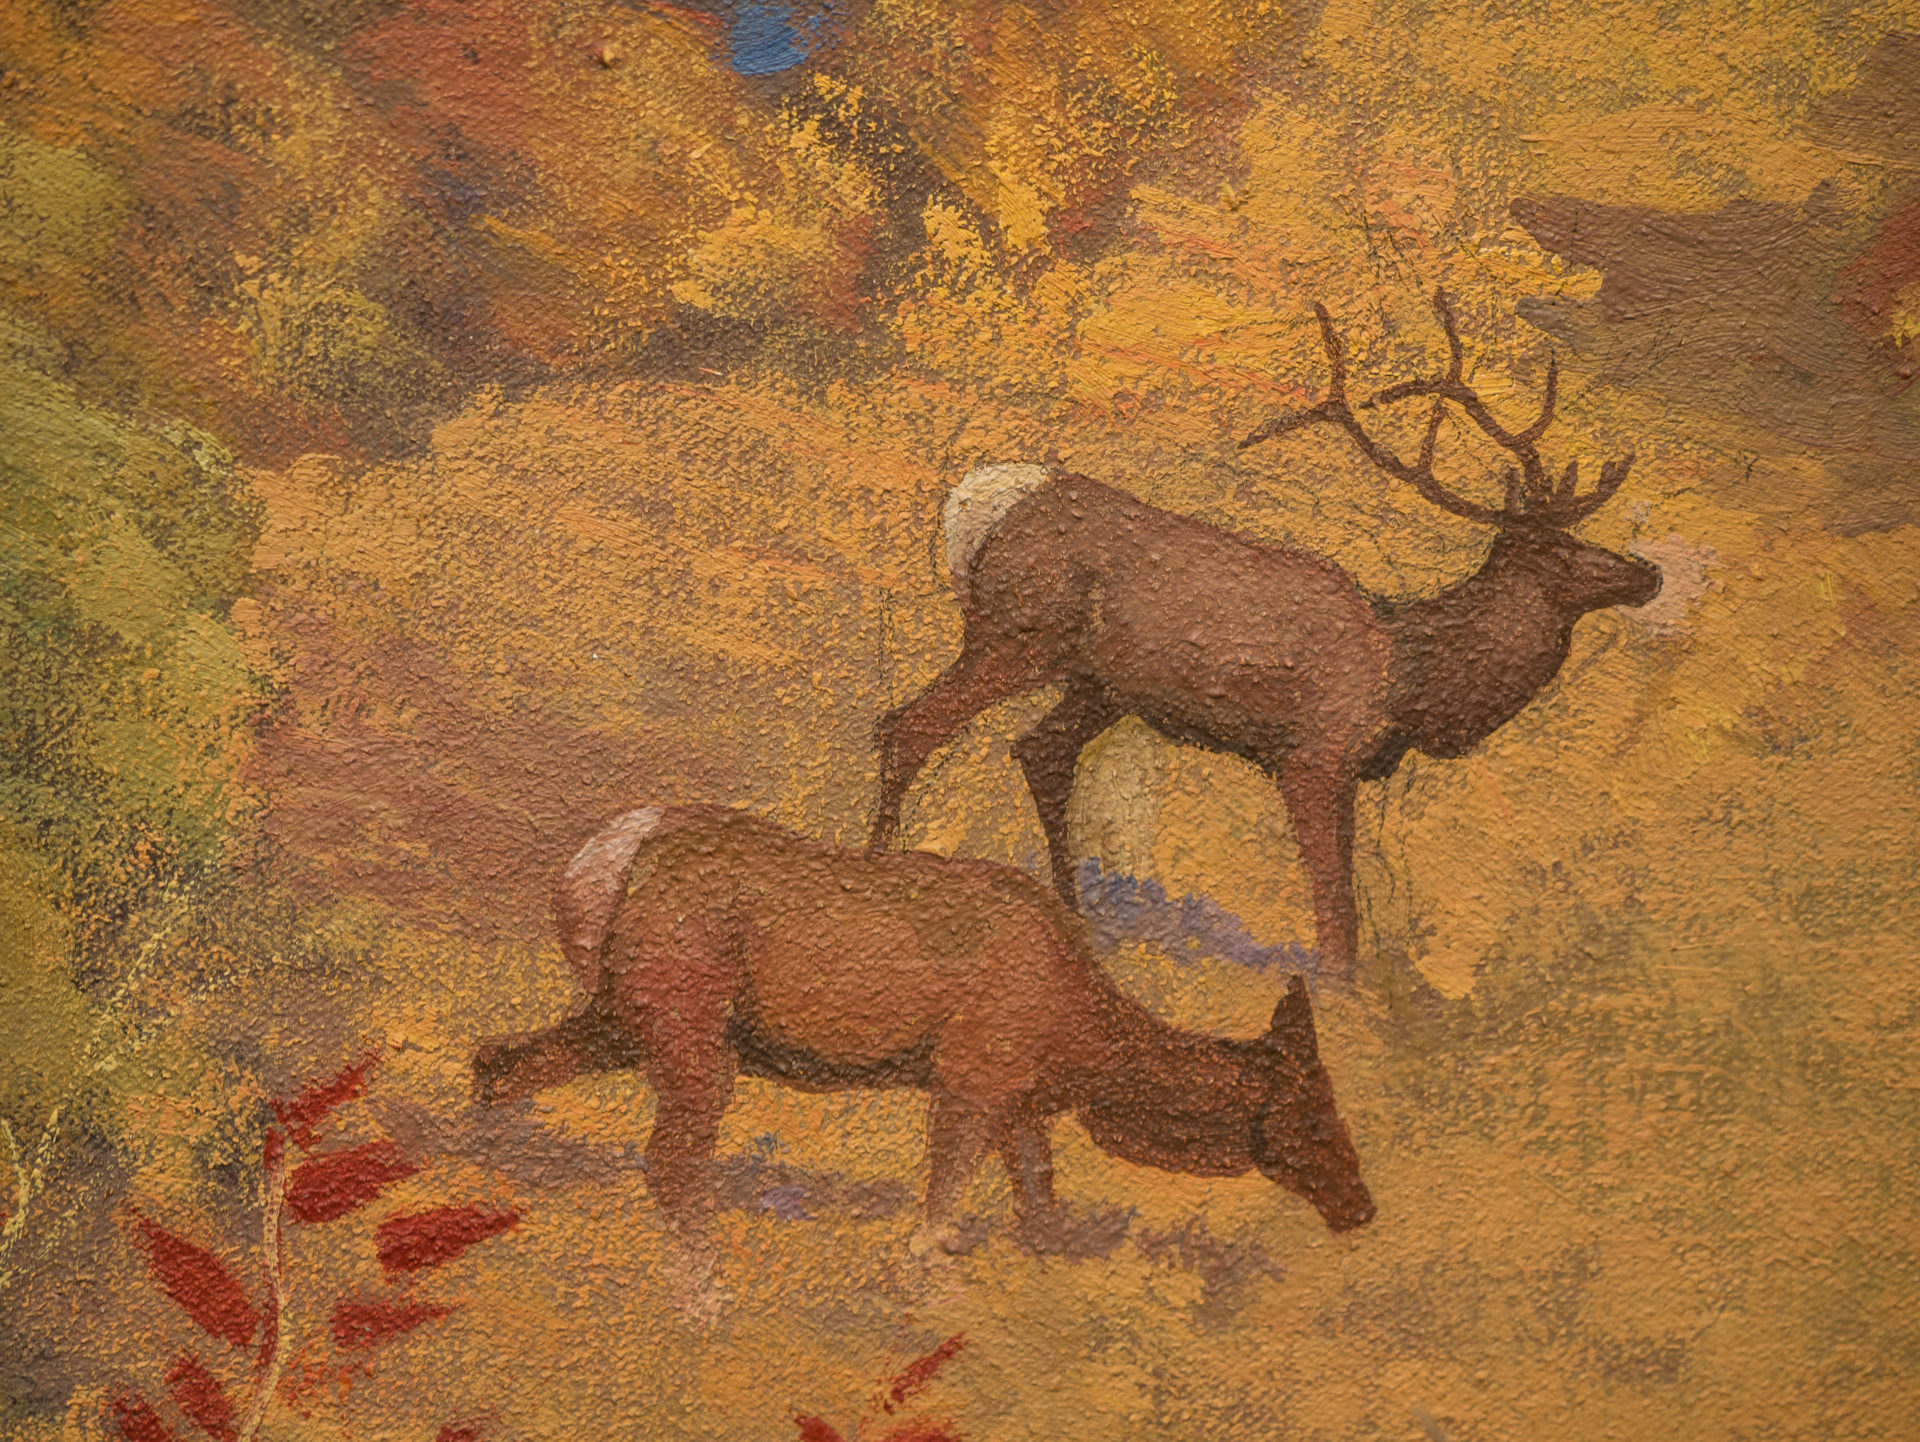 Jaques painting of 2 elk at a distance